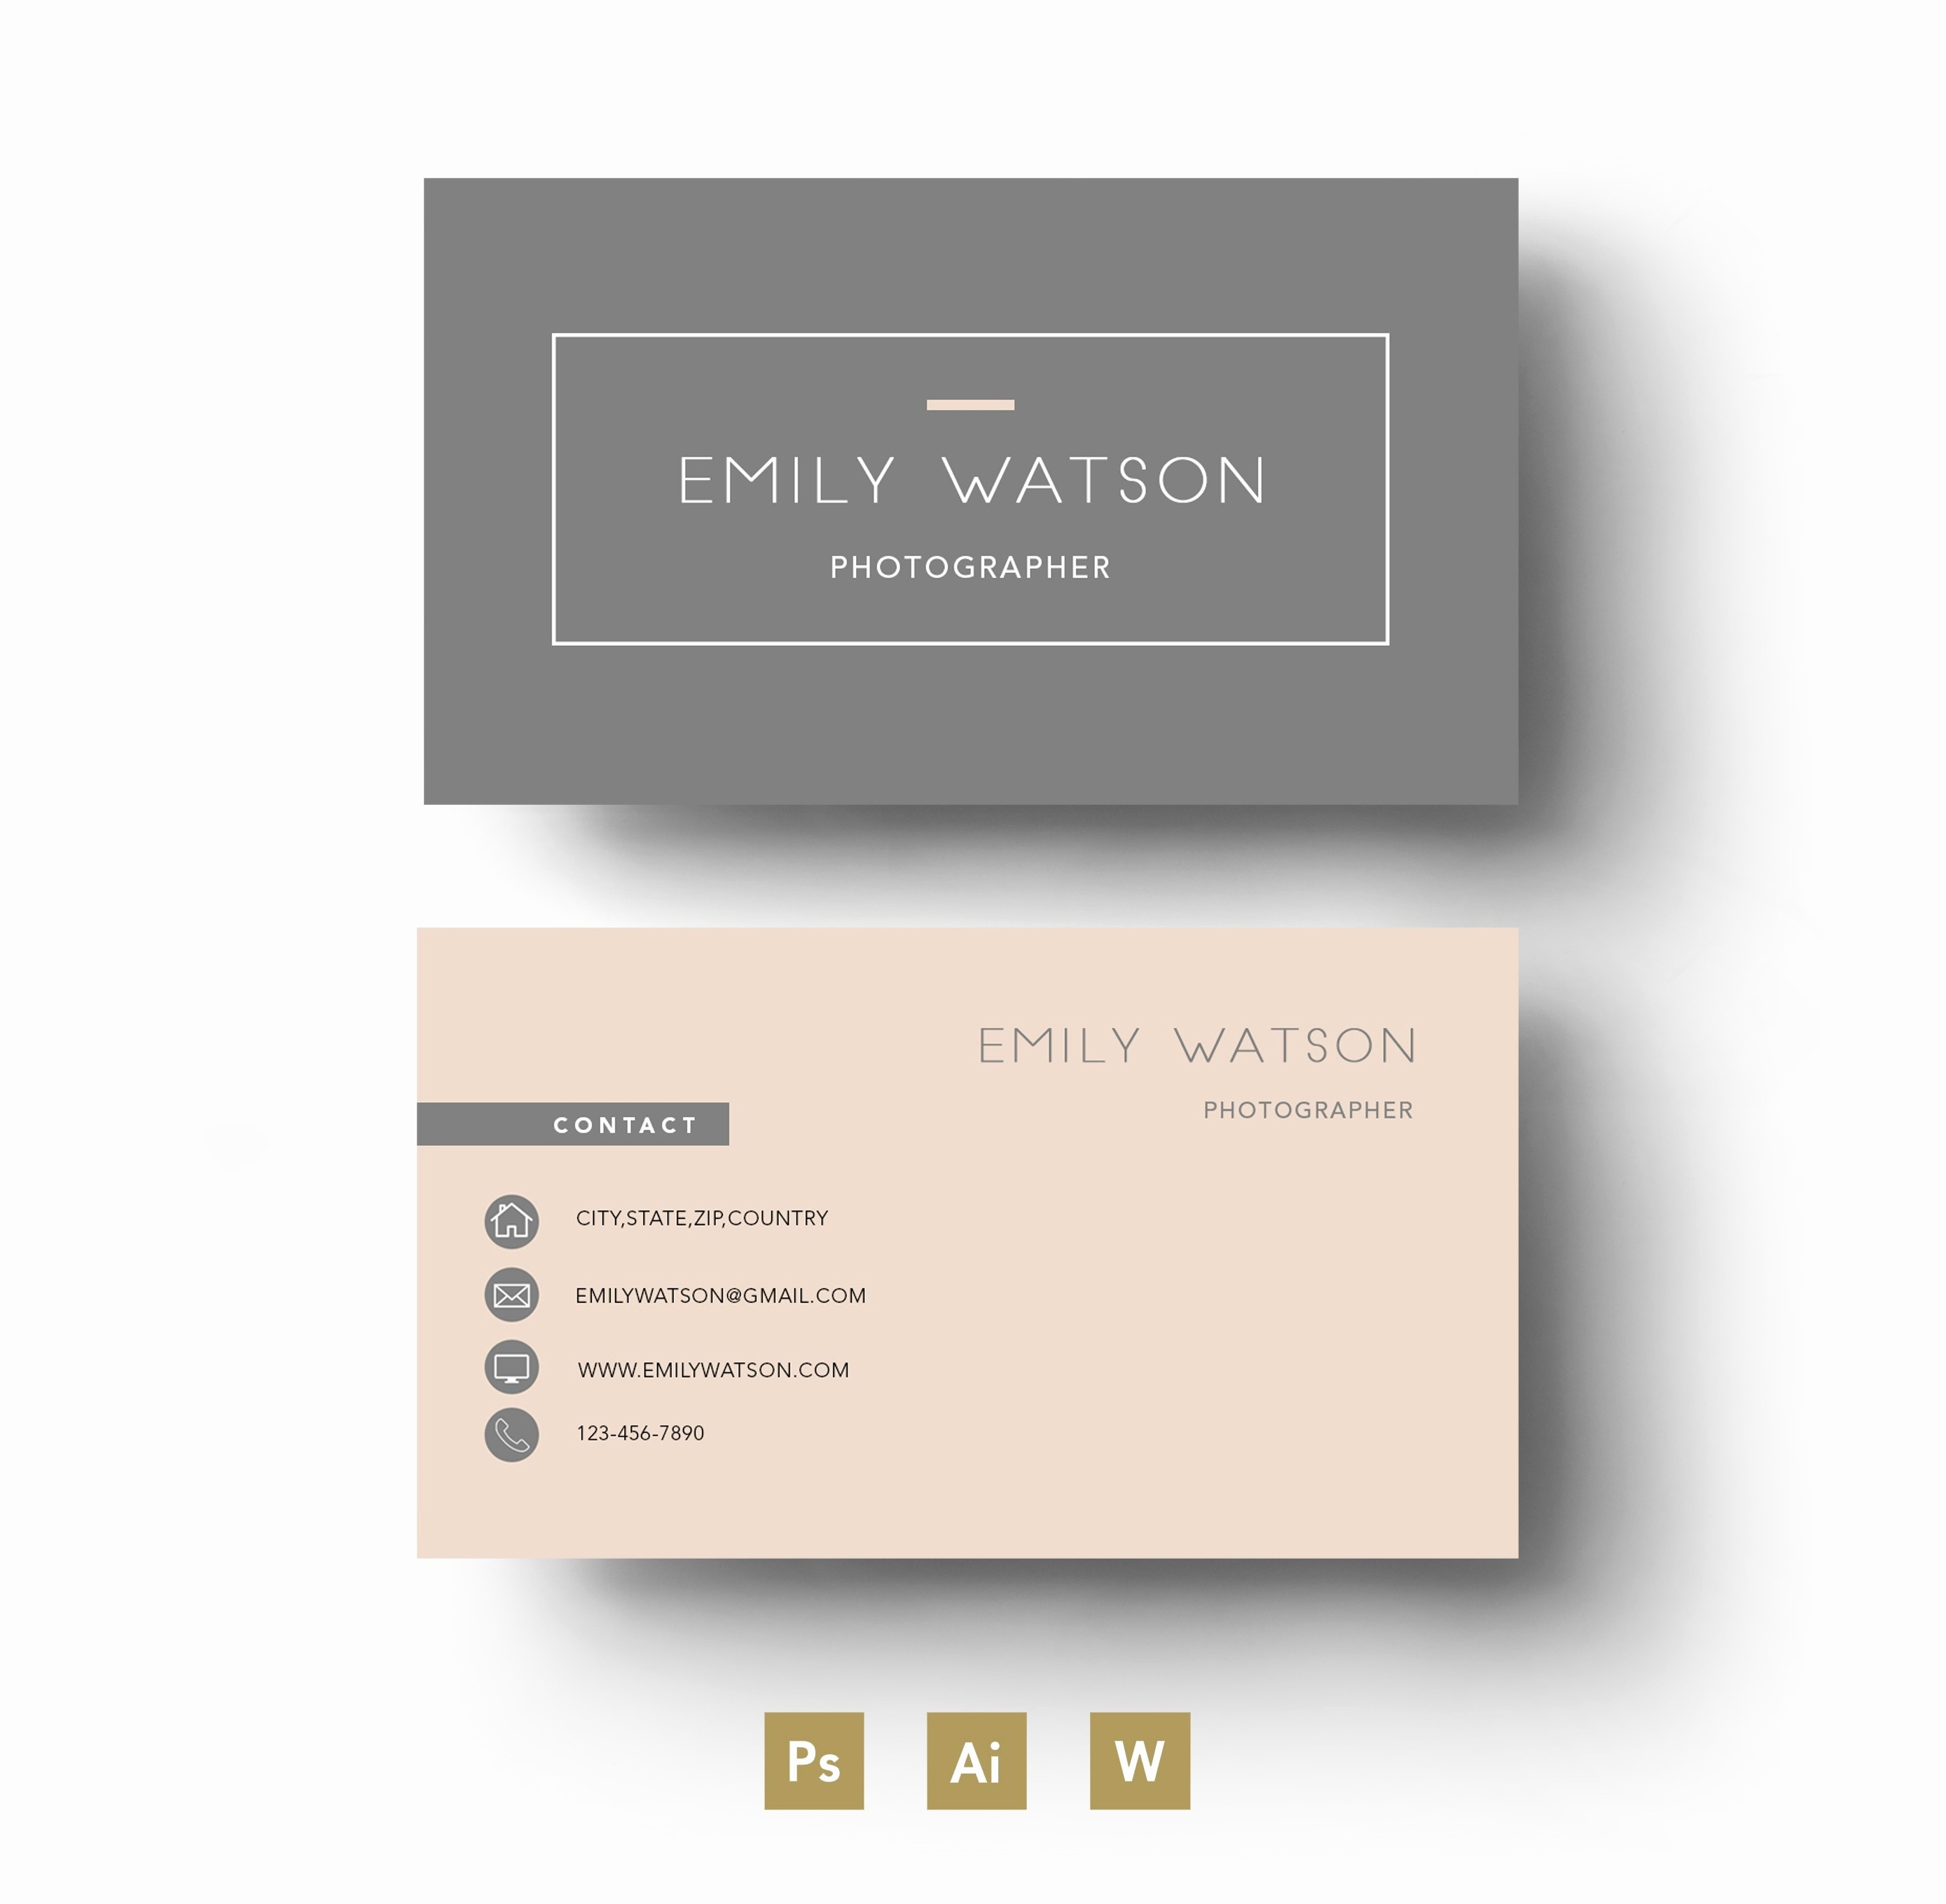 50 Inspirational Business Cards For Teachers Templates Free - Free Printable Business Card Templates For Teachers